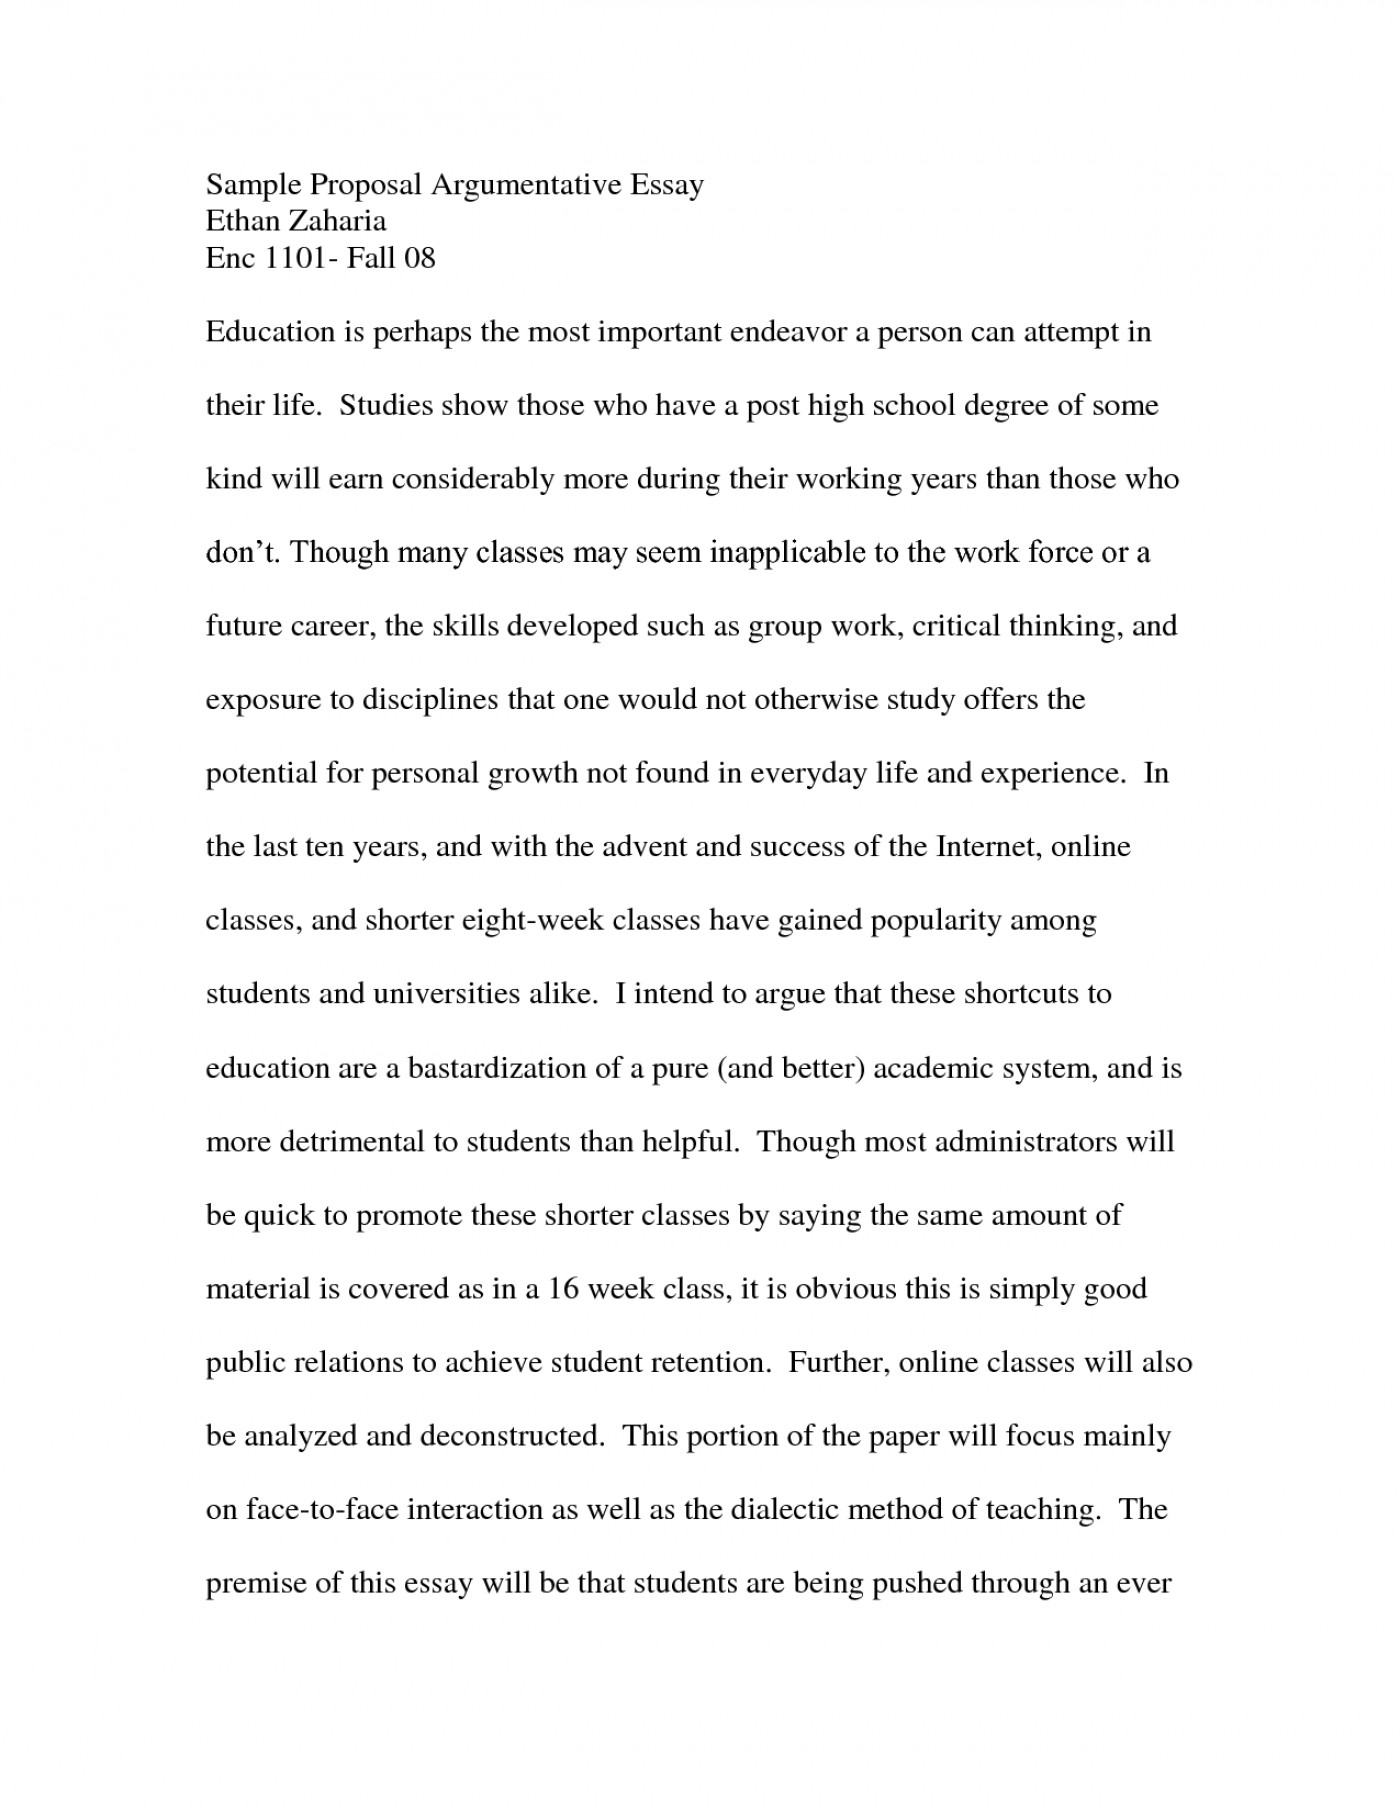 016 Essay Example 3d7hsocgst How To Write Claim For Astounding A An Of Value Fact And Support 1400